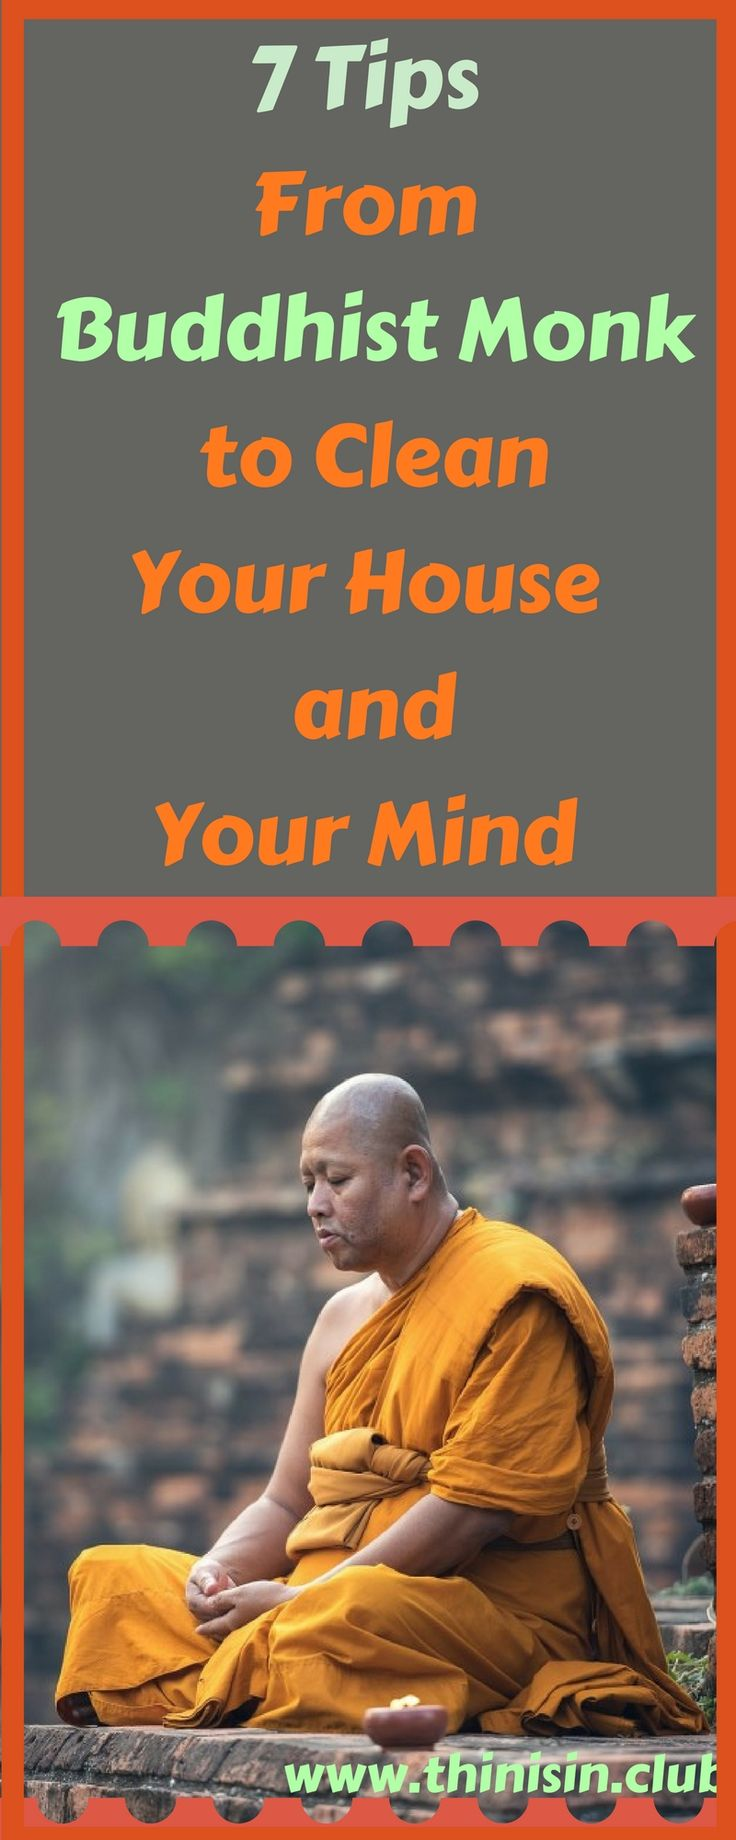 7 Tips From a Buddhist Monk to Clean Your House and Your